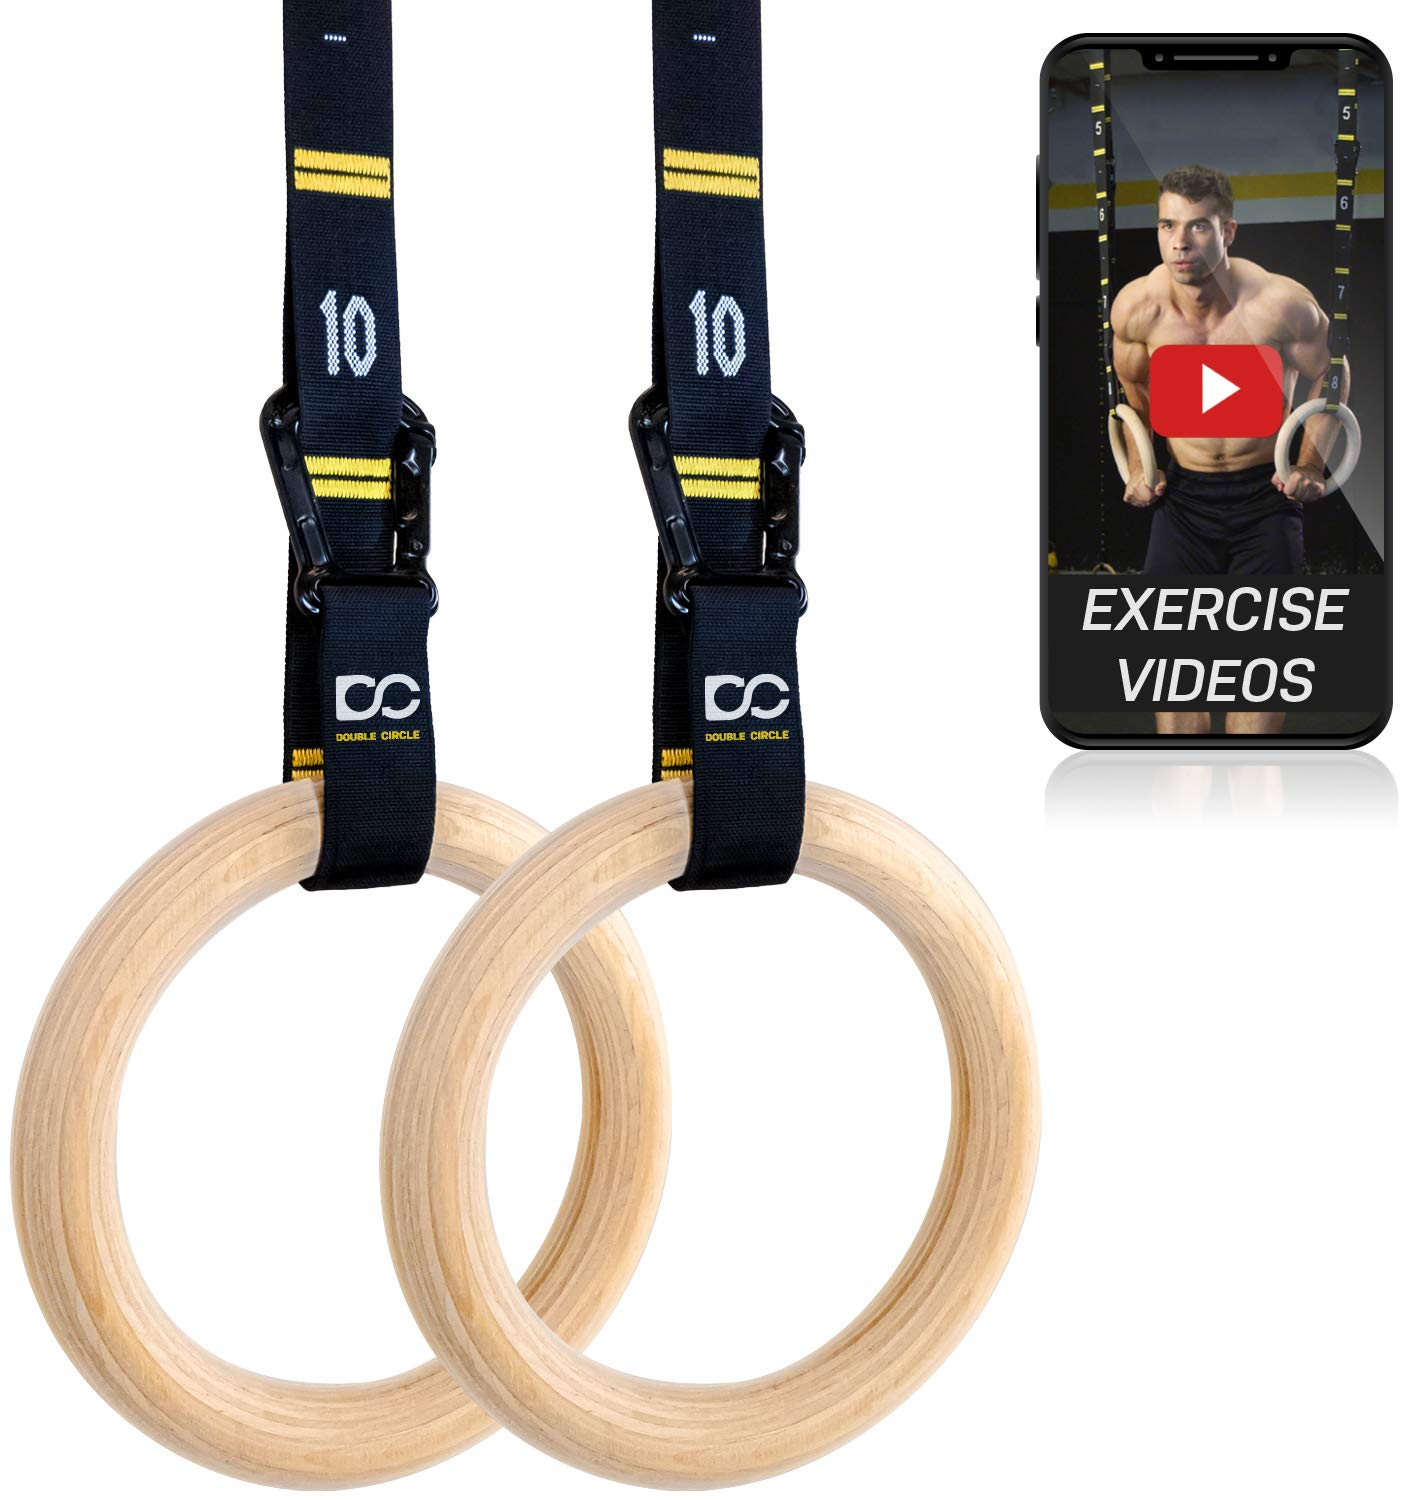 Double Circle Wood Gymnastic Rings with Quick Adjust Numbered Straps and Exercise Videos Guide for Full Body Workout, Crossfit, and Home Gym